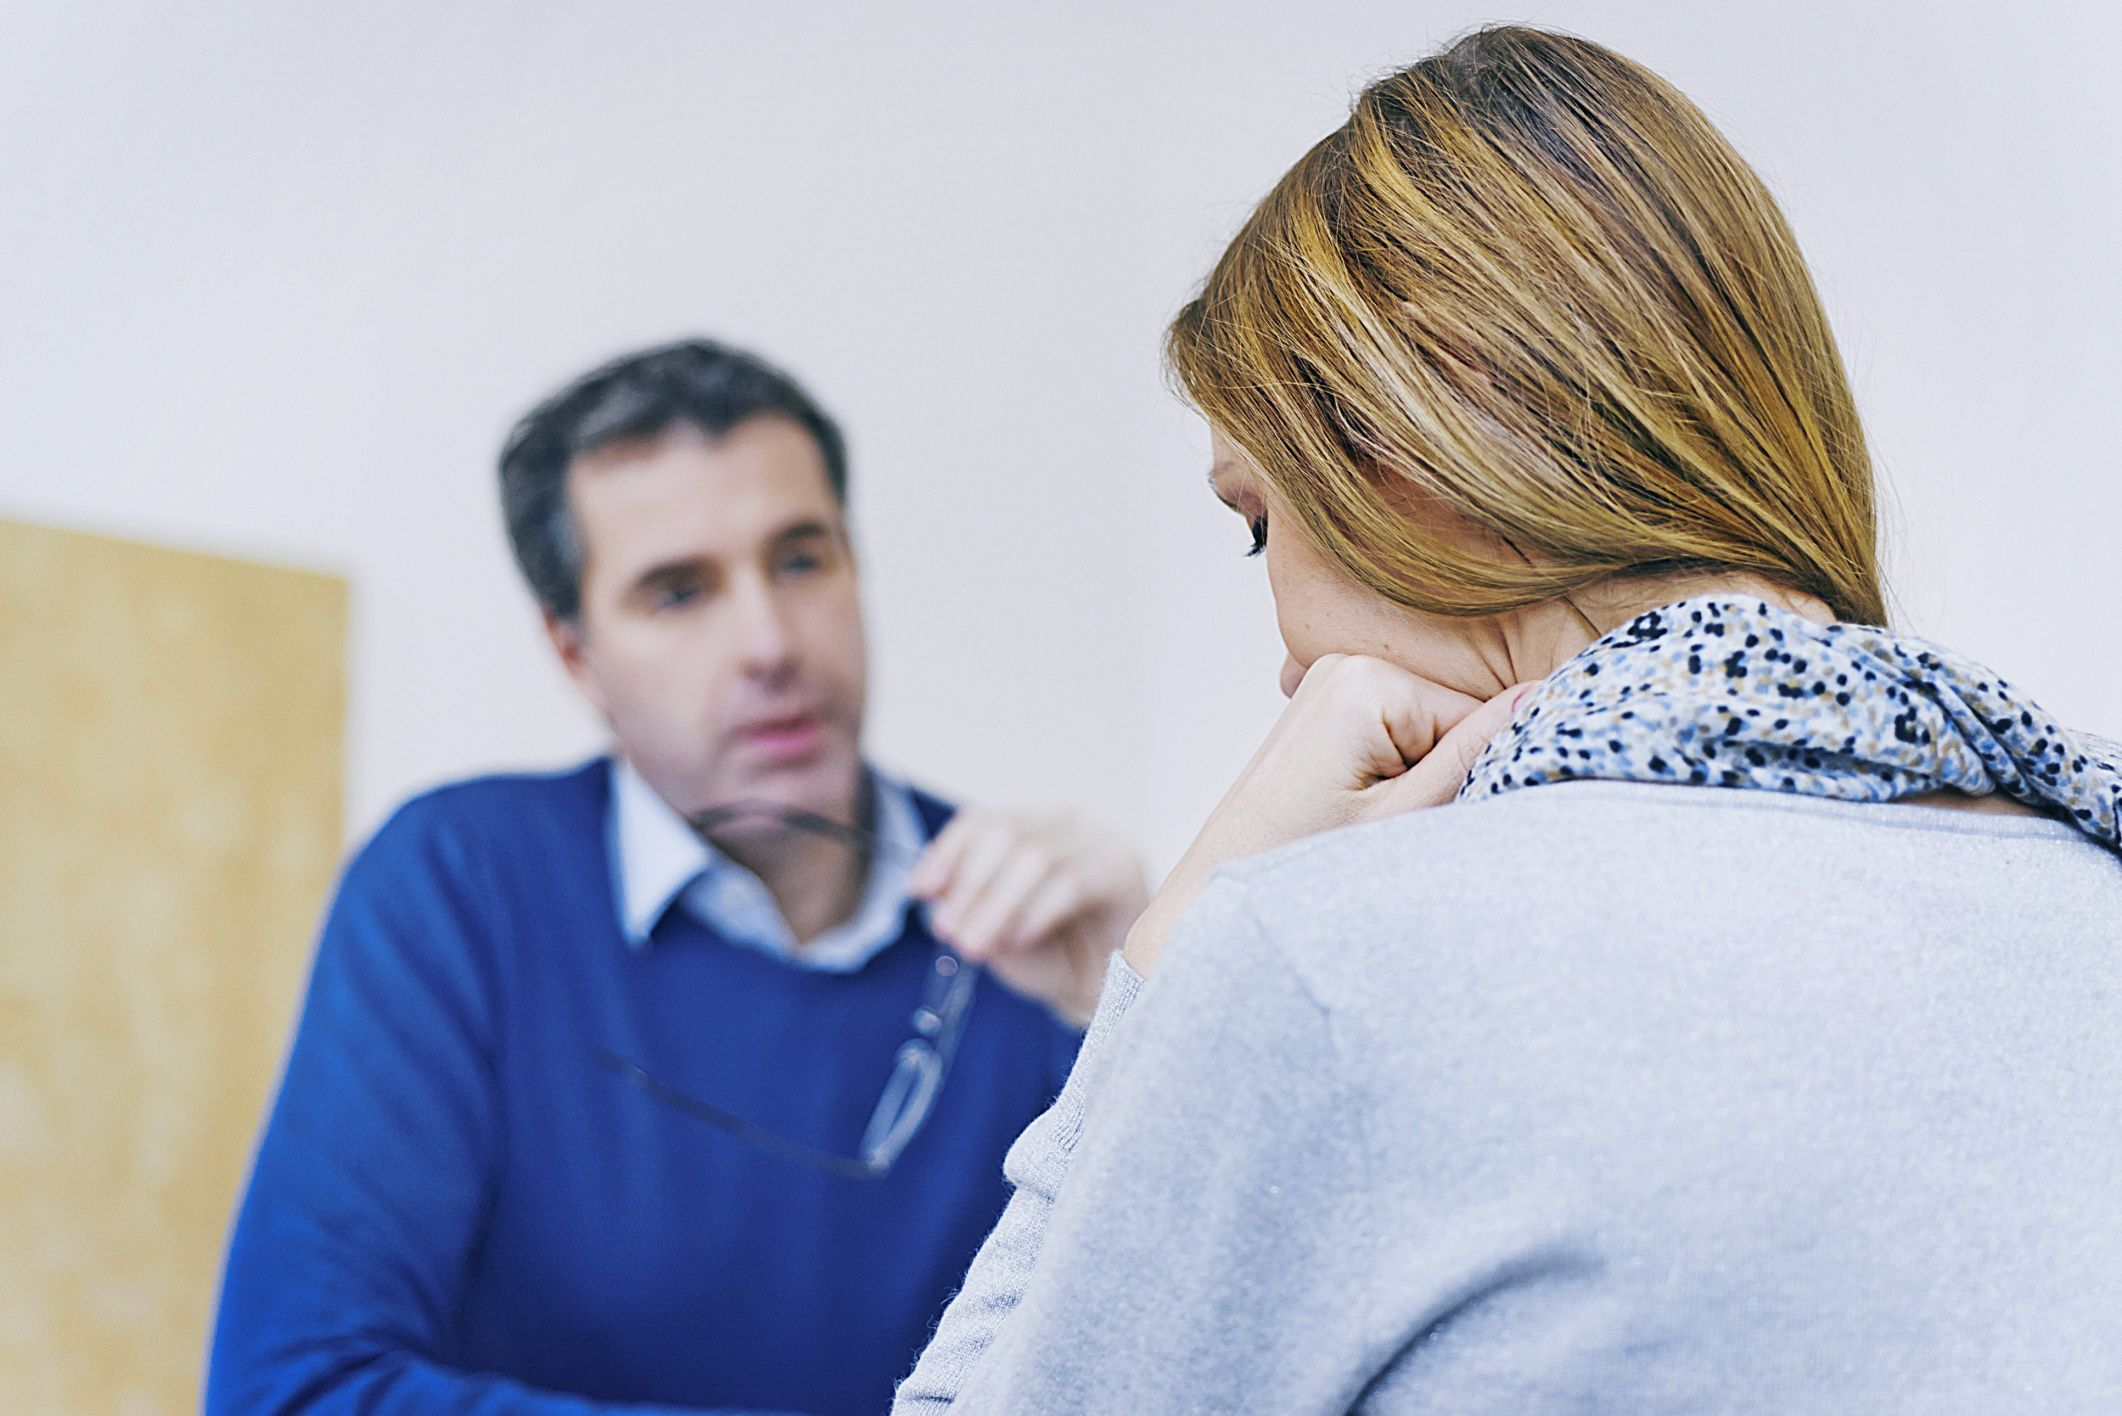 theories and types of depression Abnormal psychology ch 7  what type of major depression would she most likely be diagnosed with  the individual associated with developing a cognitive theory.